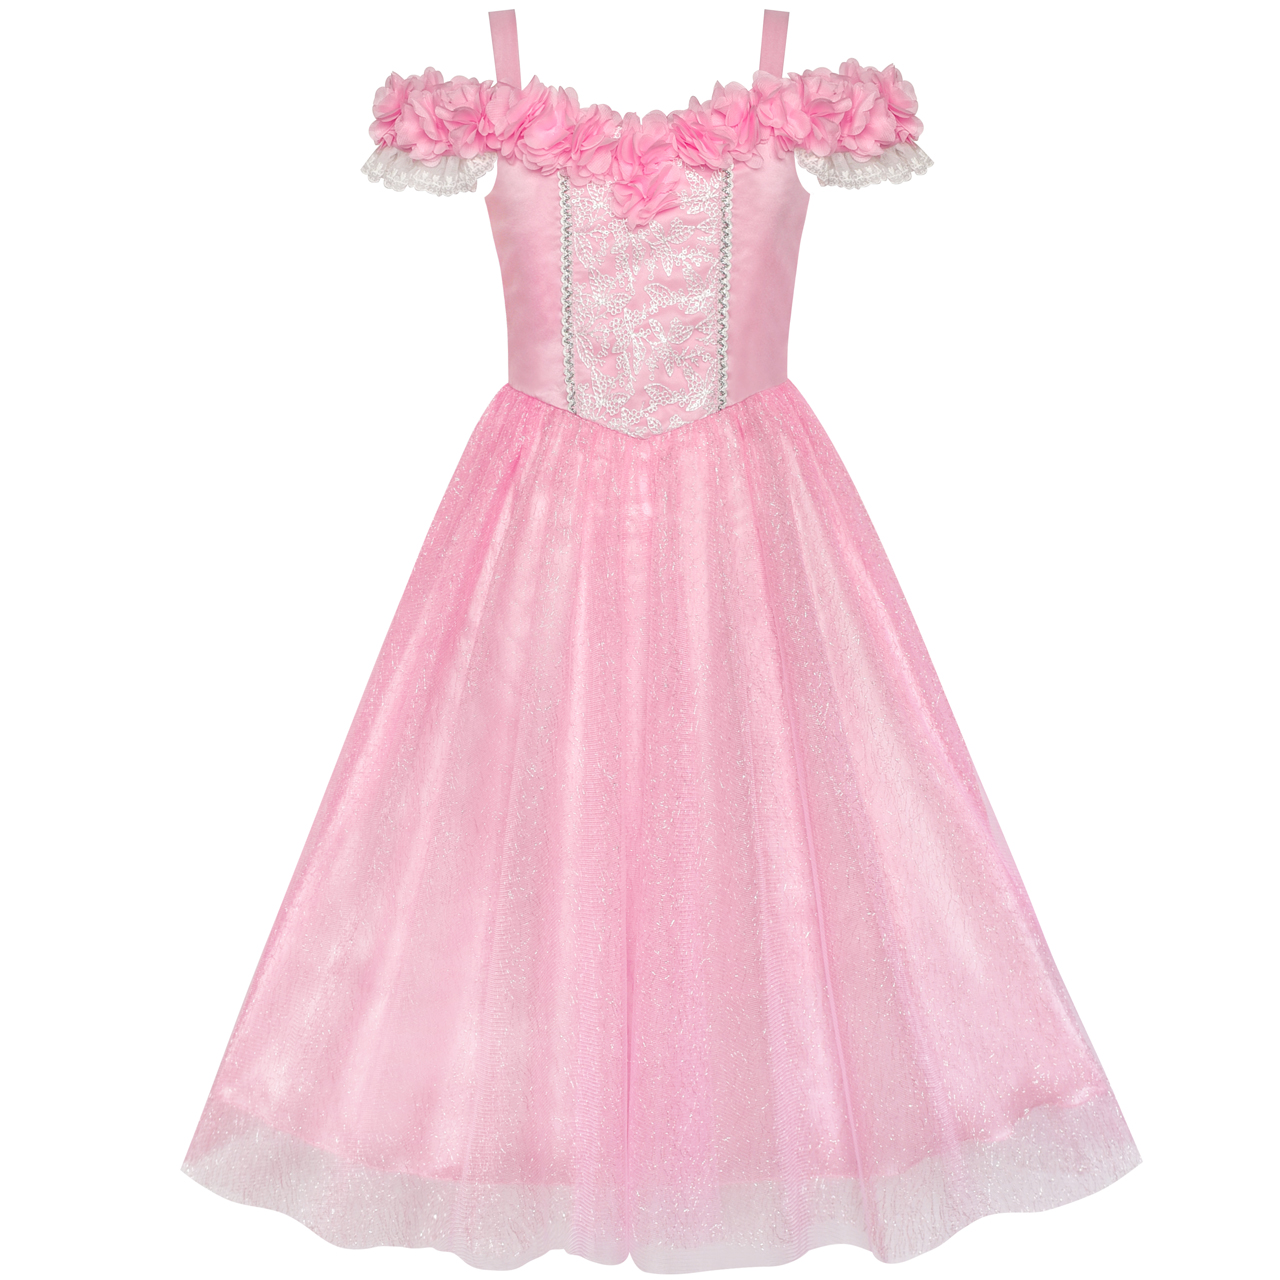 Sunny Fashion Flower Girls Dress Pink Cold Shoulder Bridesmaid Wedding 2018 Summer Princess Party Dresses Clothes Size 6-12 sunny fashion girls dress satin blue sky butterfly city building 2017 summer princess wedding party dresses clothes size 4 10